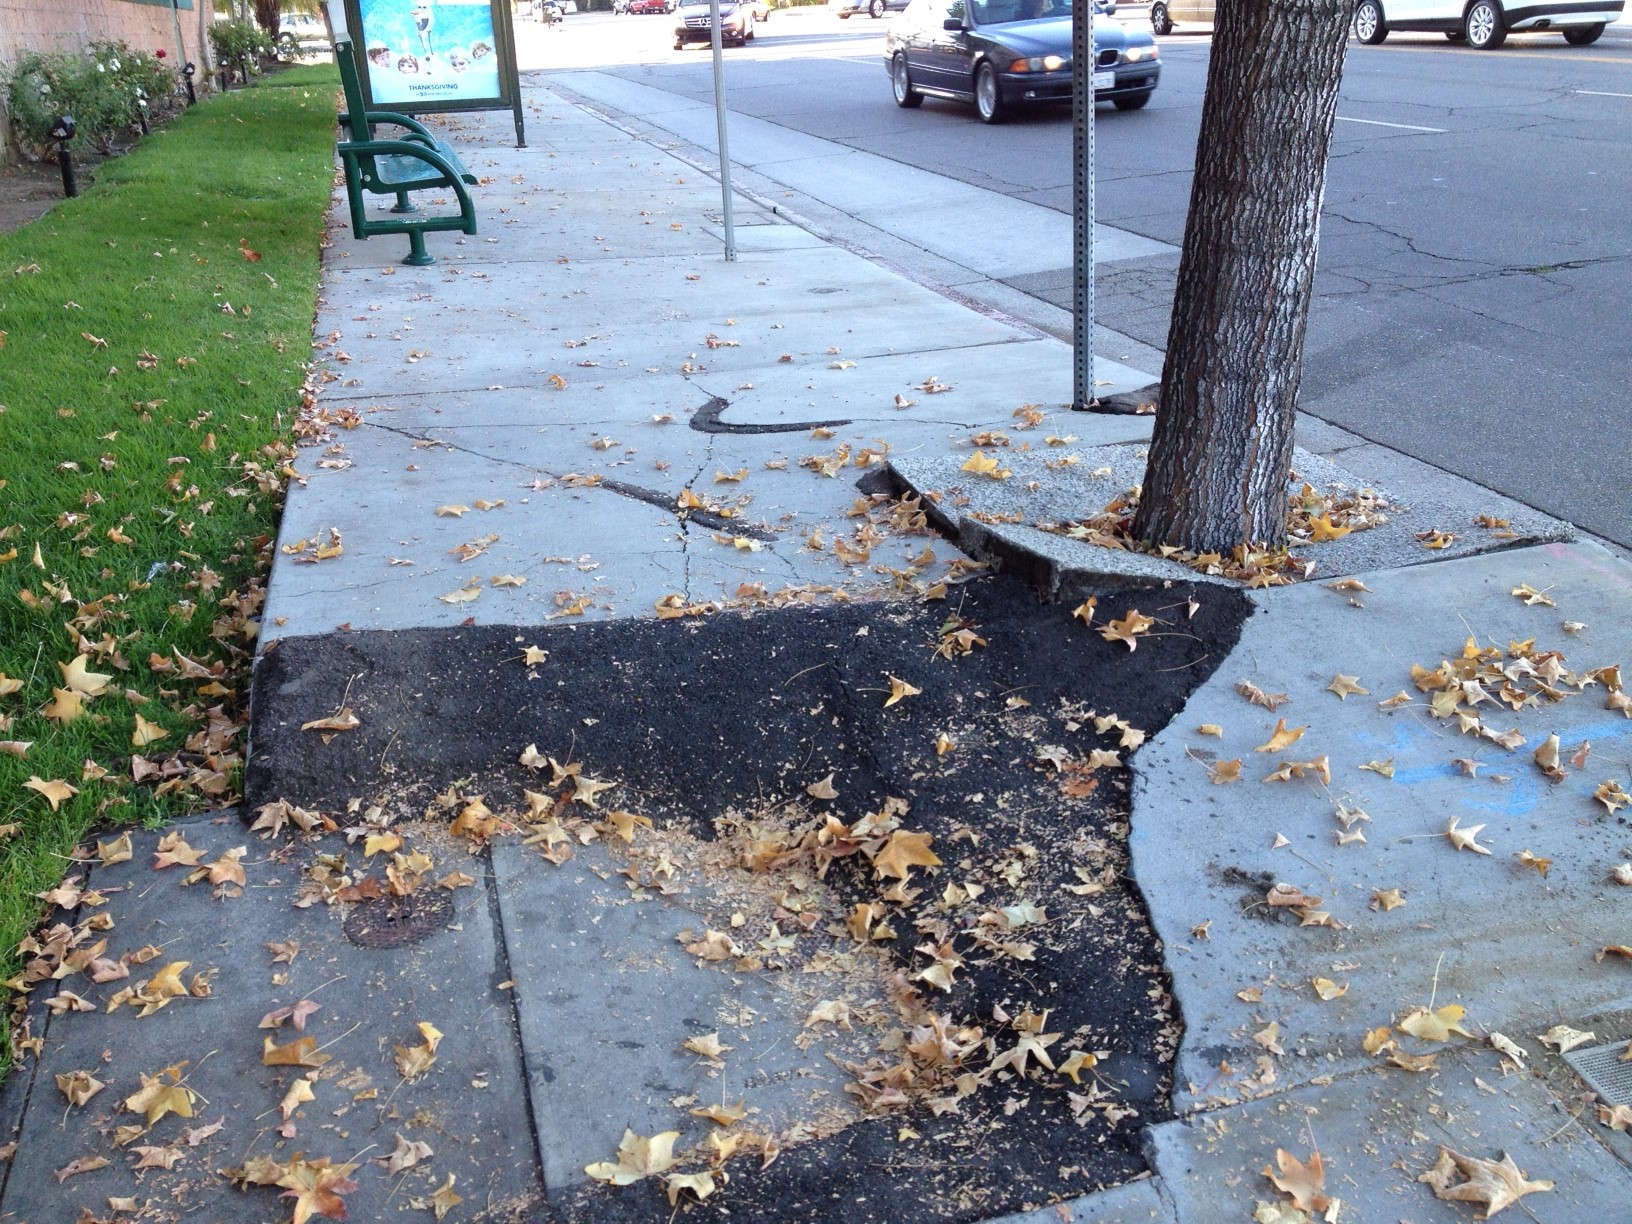 Uprooted sidewalk in Woodland Hills. Bureau of Street Services has previously estimated that 40% of the system or 4,620 miles is in disrepair, with a majority of the disrepair caused by tree roots.